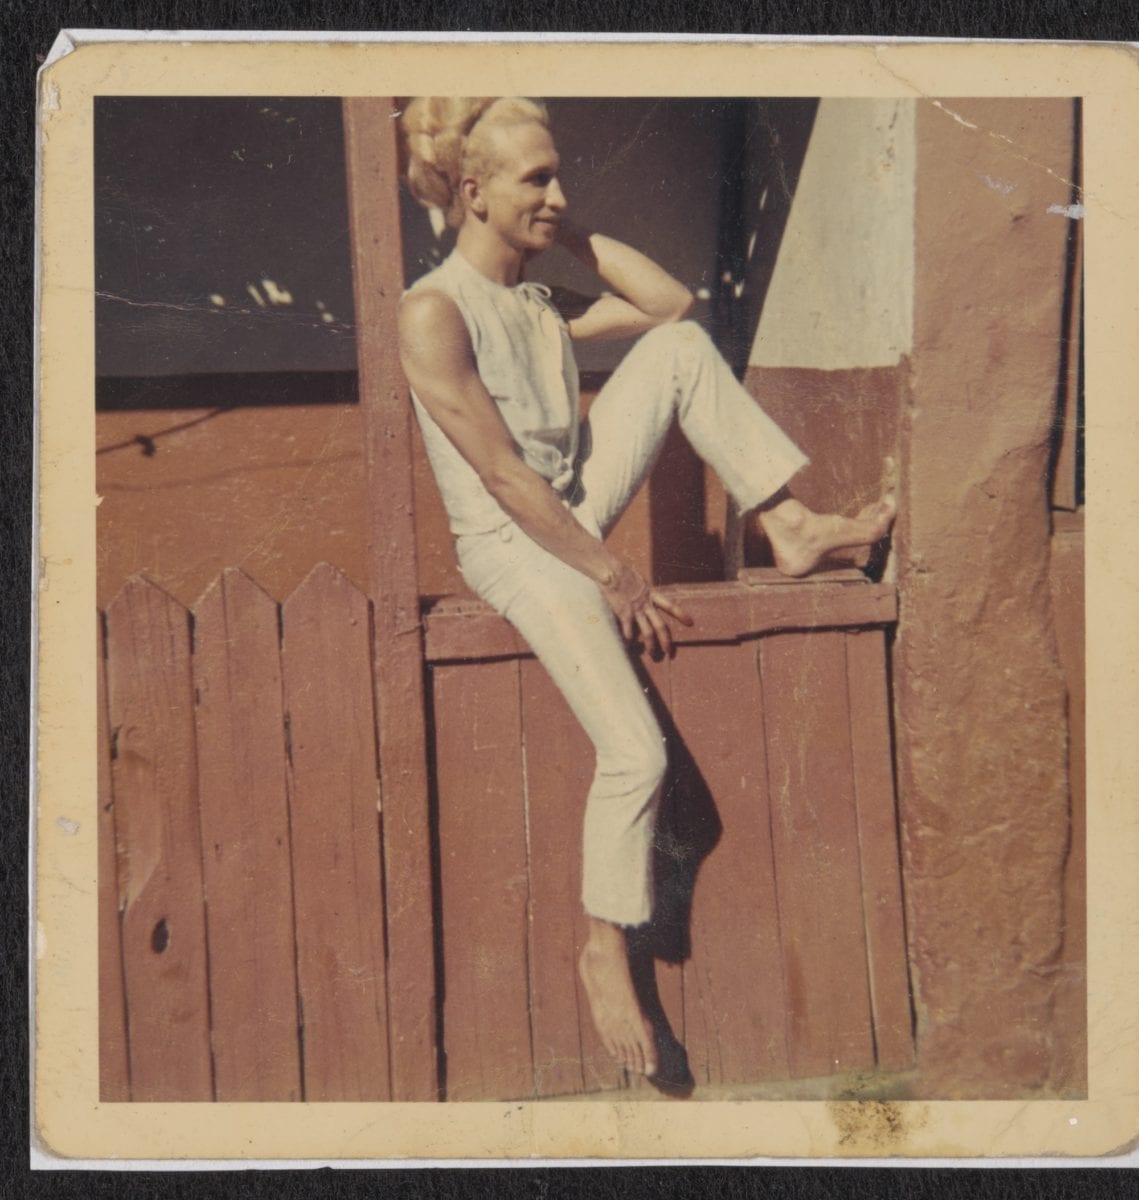 Kewpie on a Neighbour's Stoep in Invery Place, circa 1955 to 1980